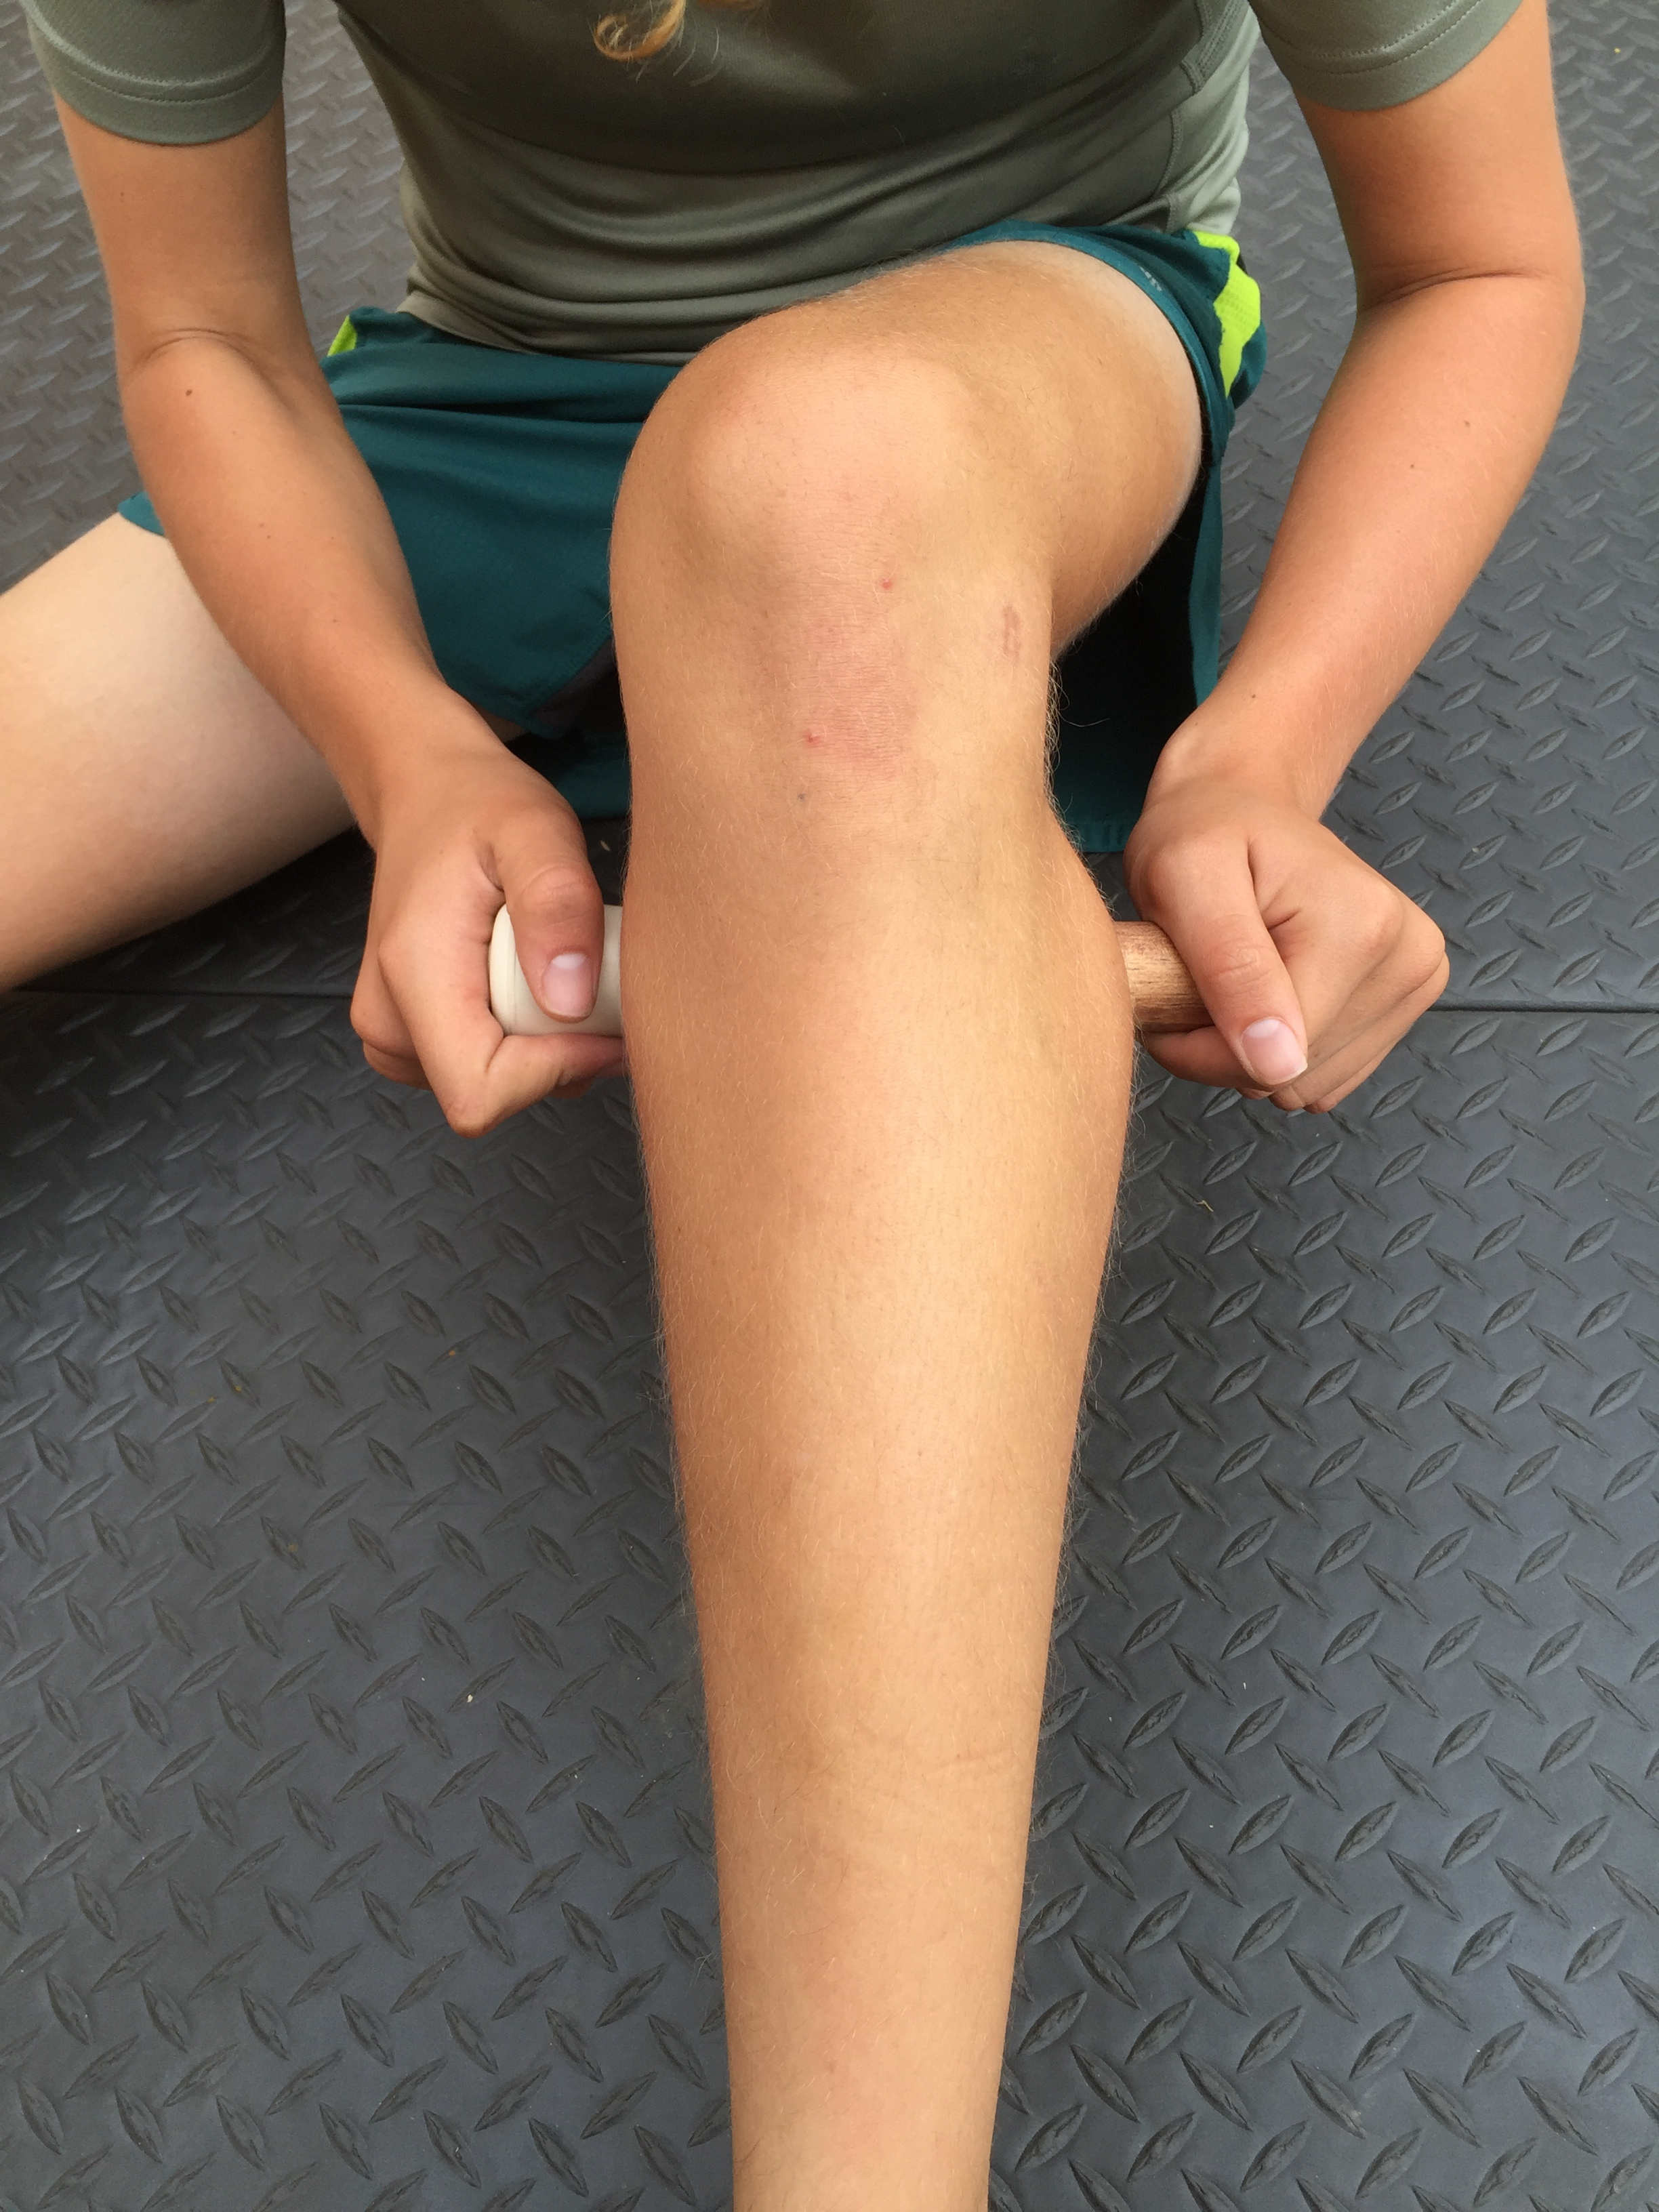 Calf: - As runners the calves can become extremely tight. Running from behind your knee to your foot the calve muscles need to be massage cautiously. And never massage directly on your Achilles tendon,an extremely sensitive area.